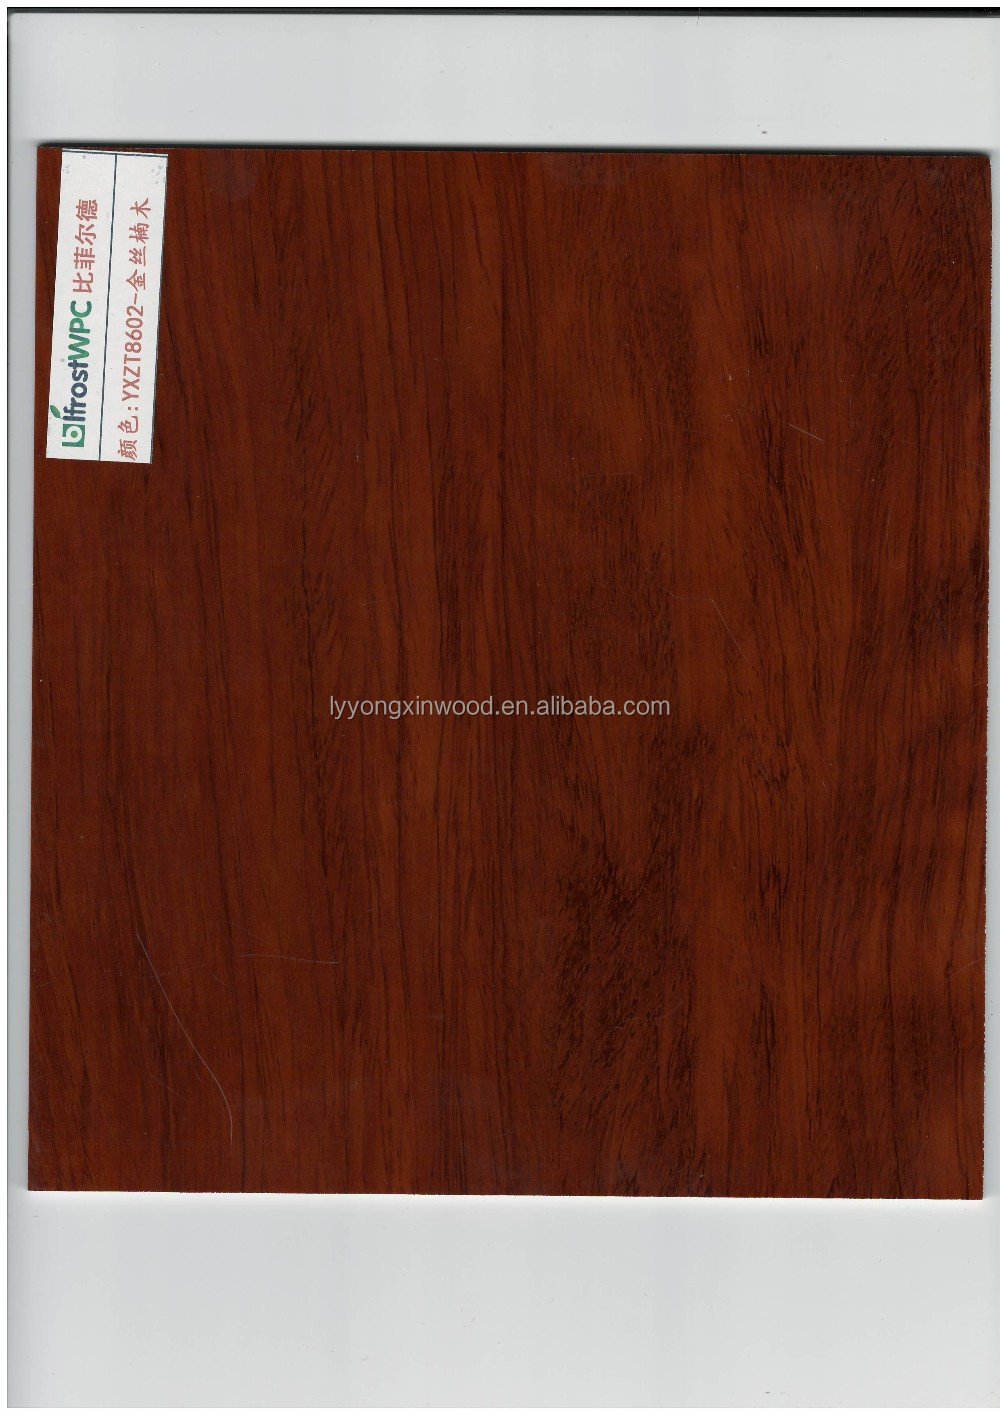 Textured Wall Panels Pvc : Interior wall decoration panel wood texture pvc